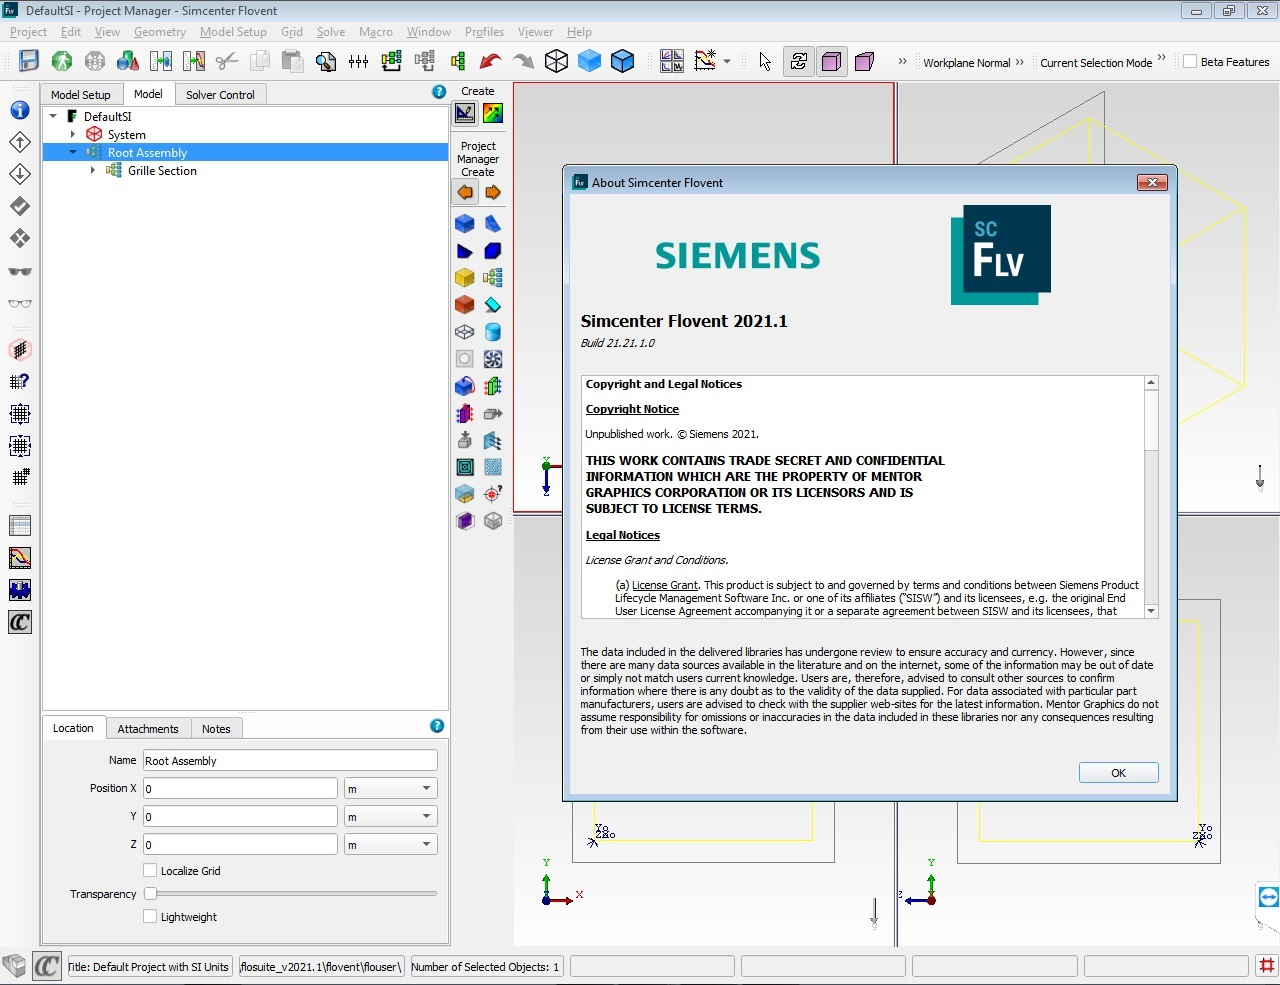 Working with Siemens Simcenter FloVENT 2021.1.0 full license